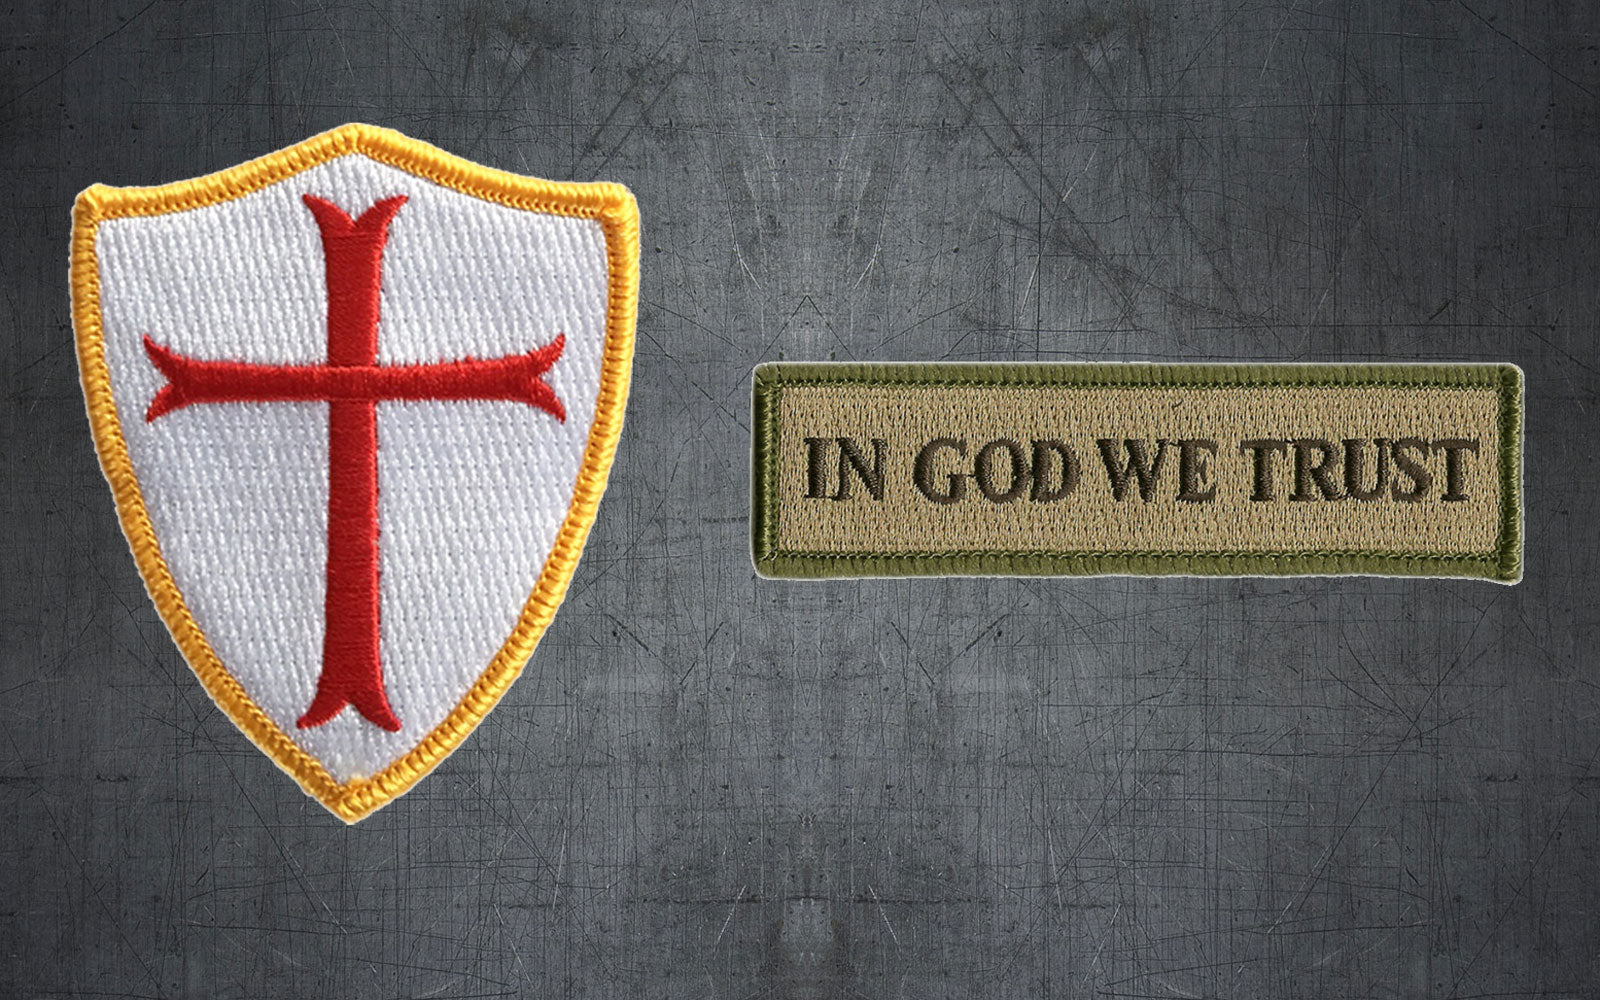 Crusader Tactical Patches